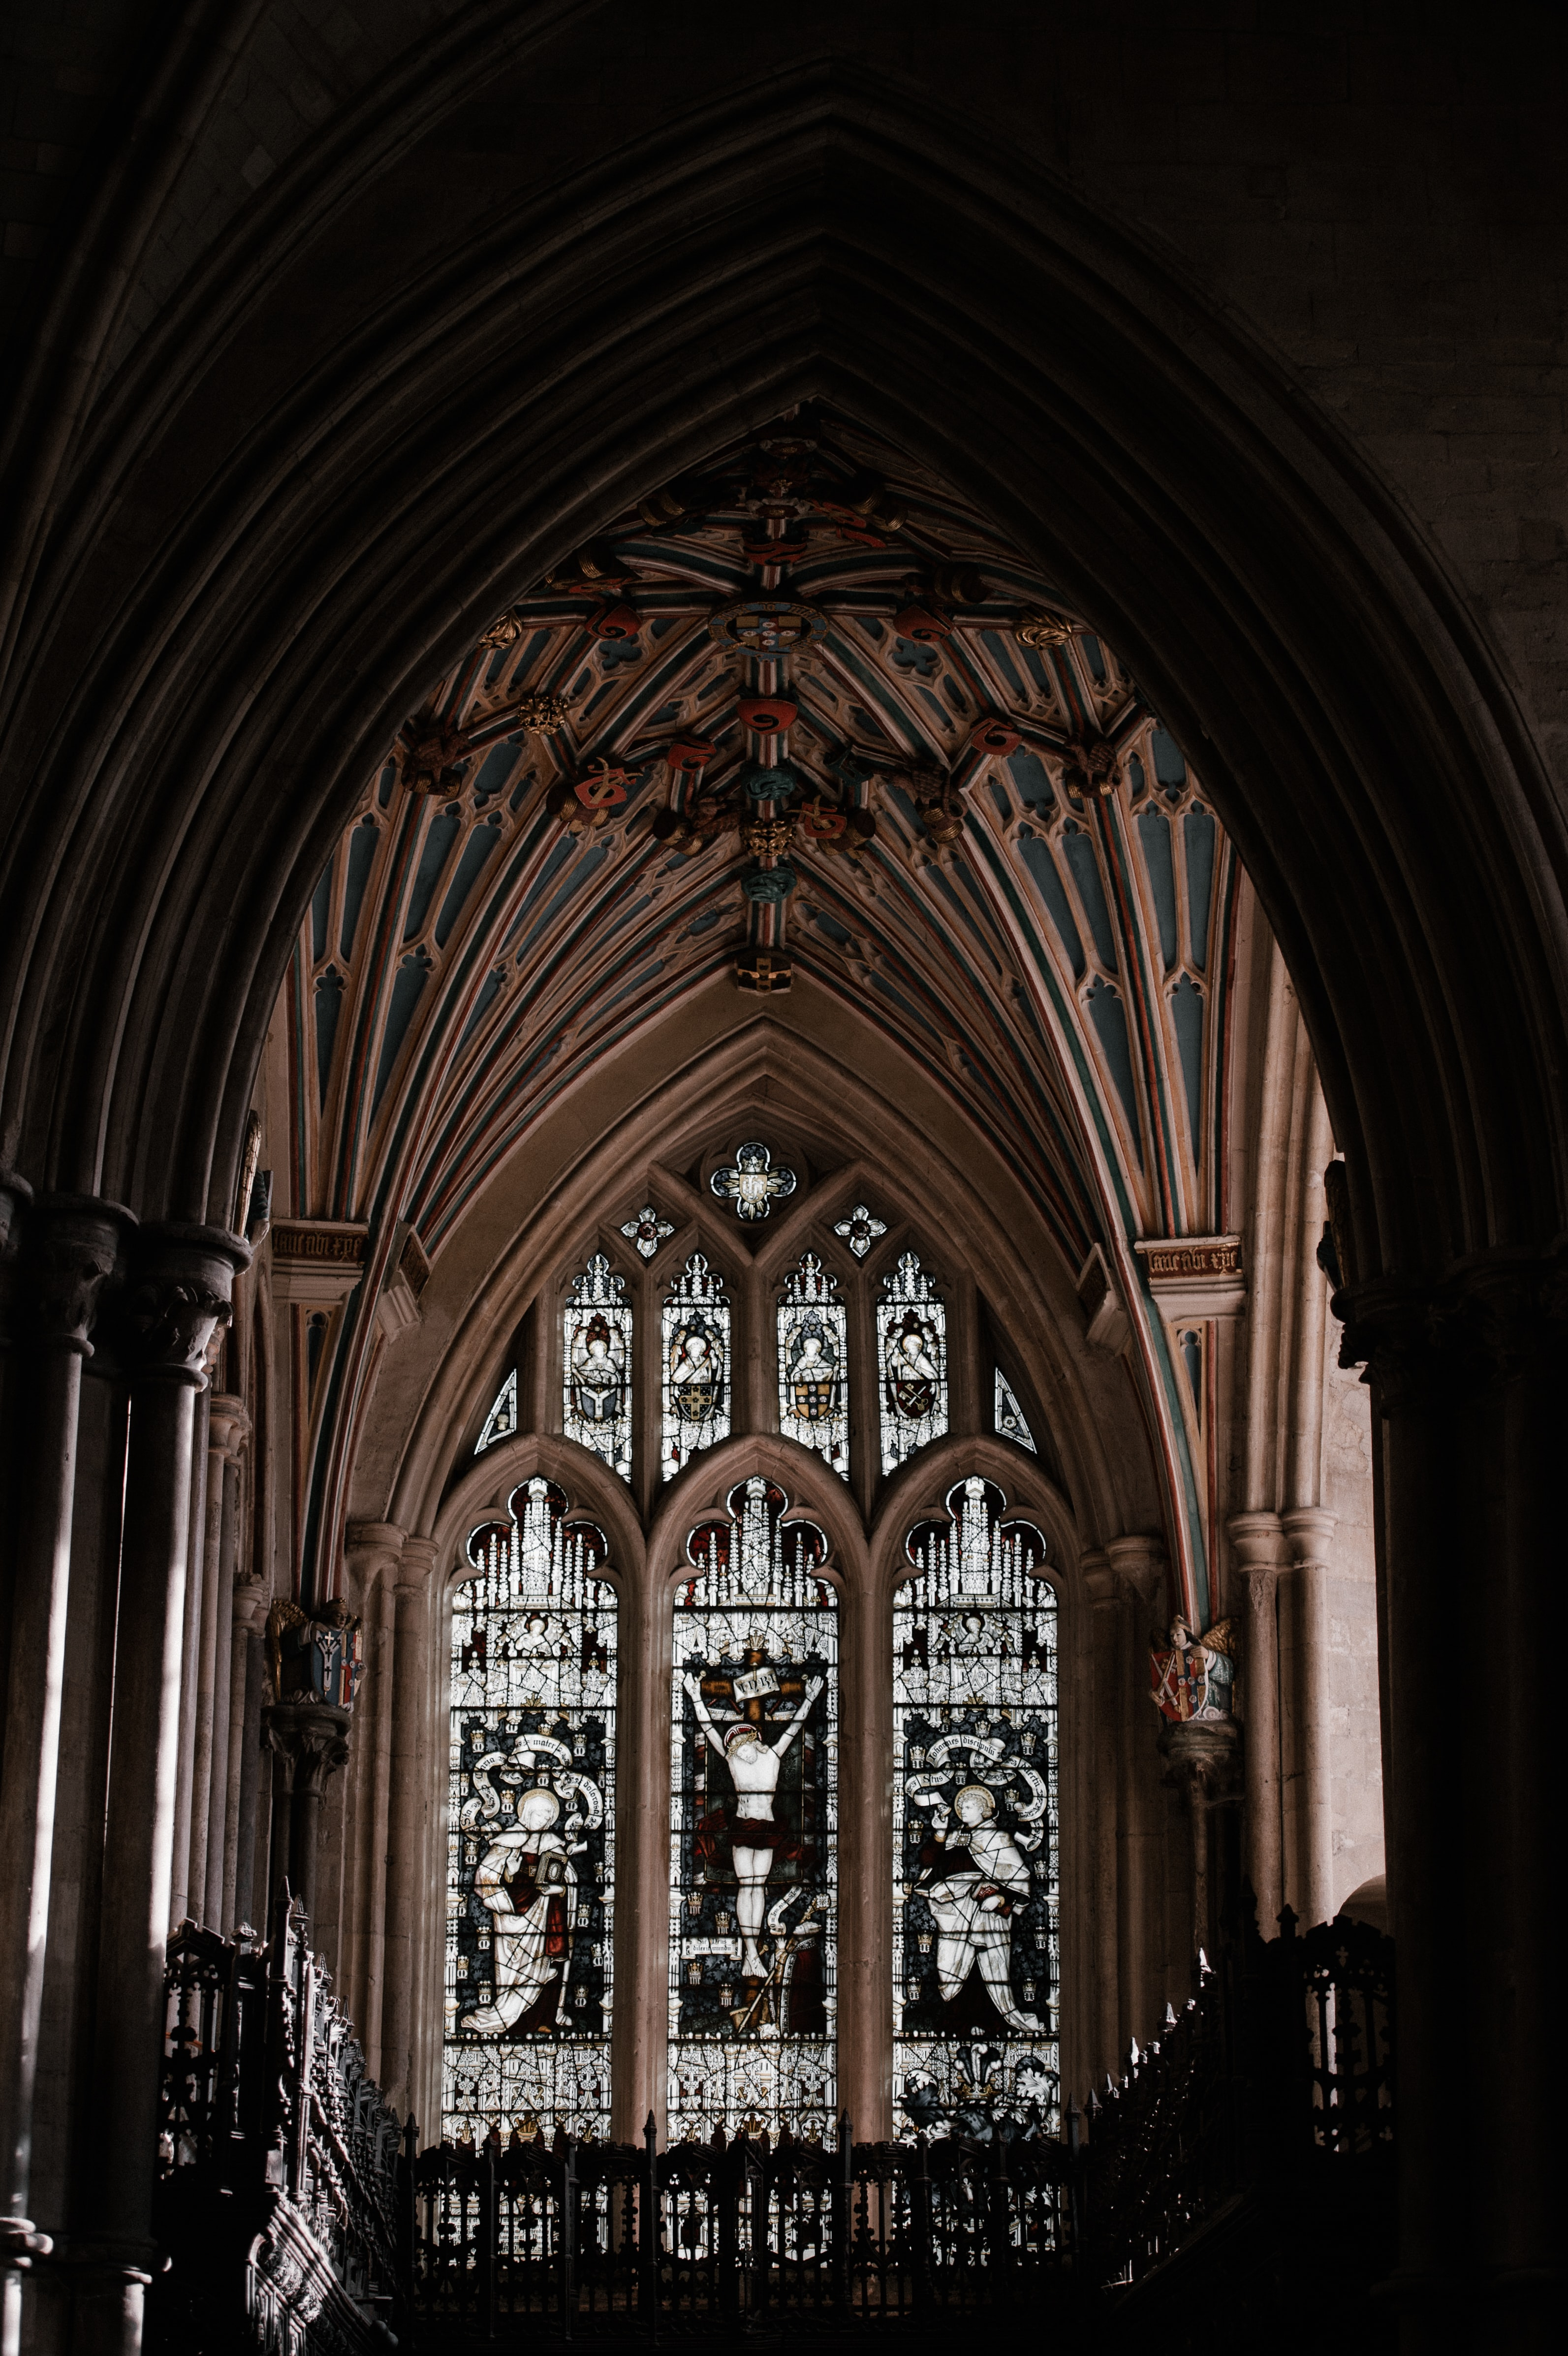 person took a photo inside cathedral